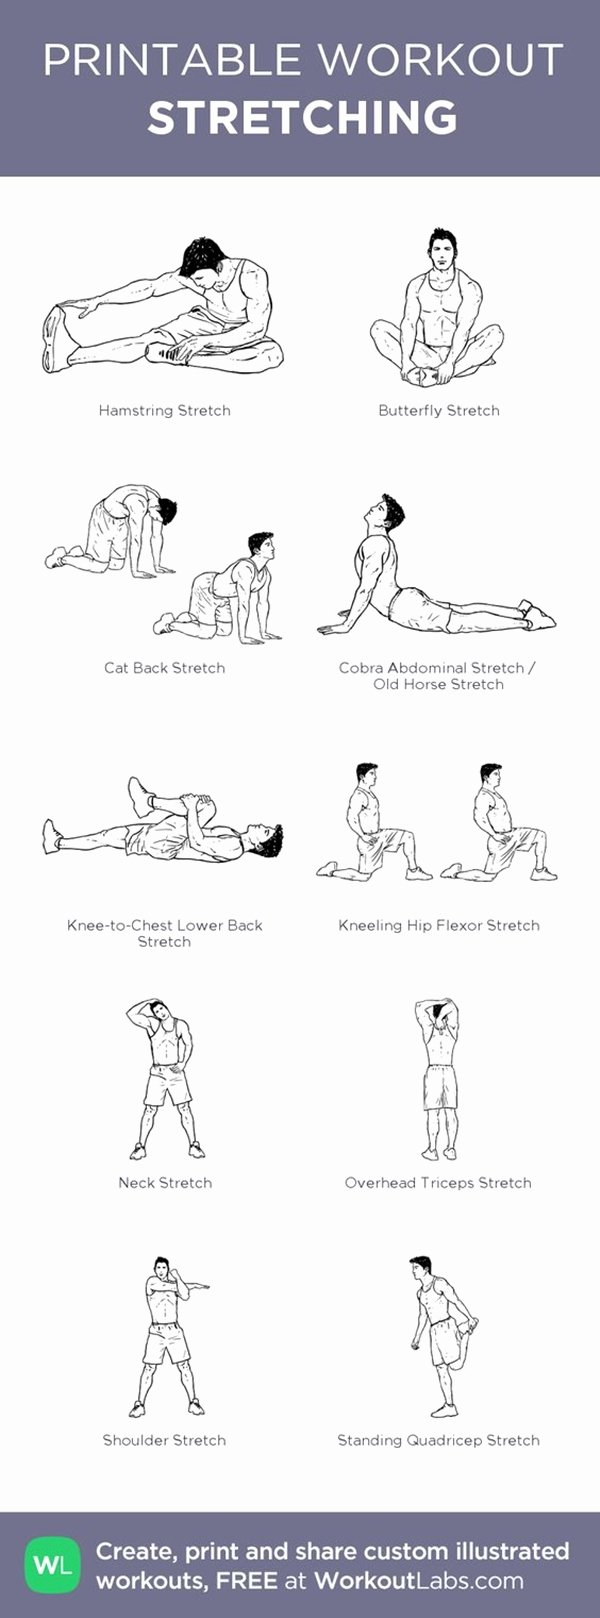 Stretching Charts Free Printable Fresh 40 Charts Of Post Workout Stretches to Prevent Injuries